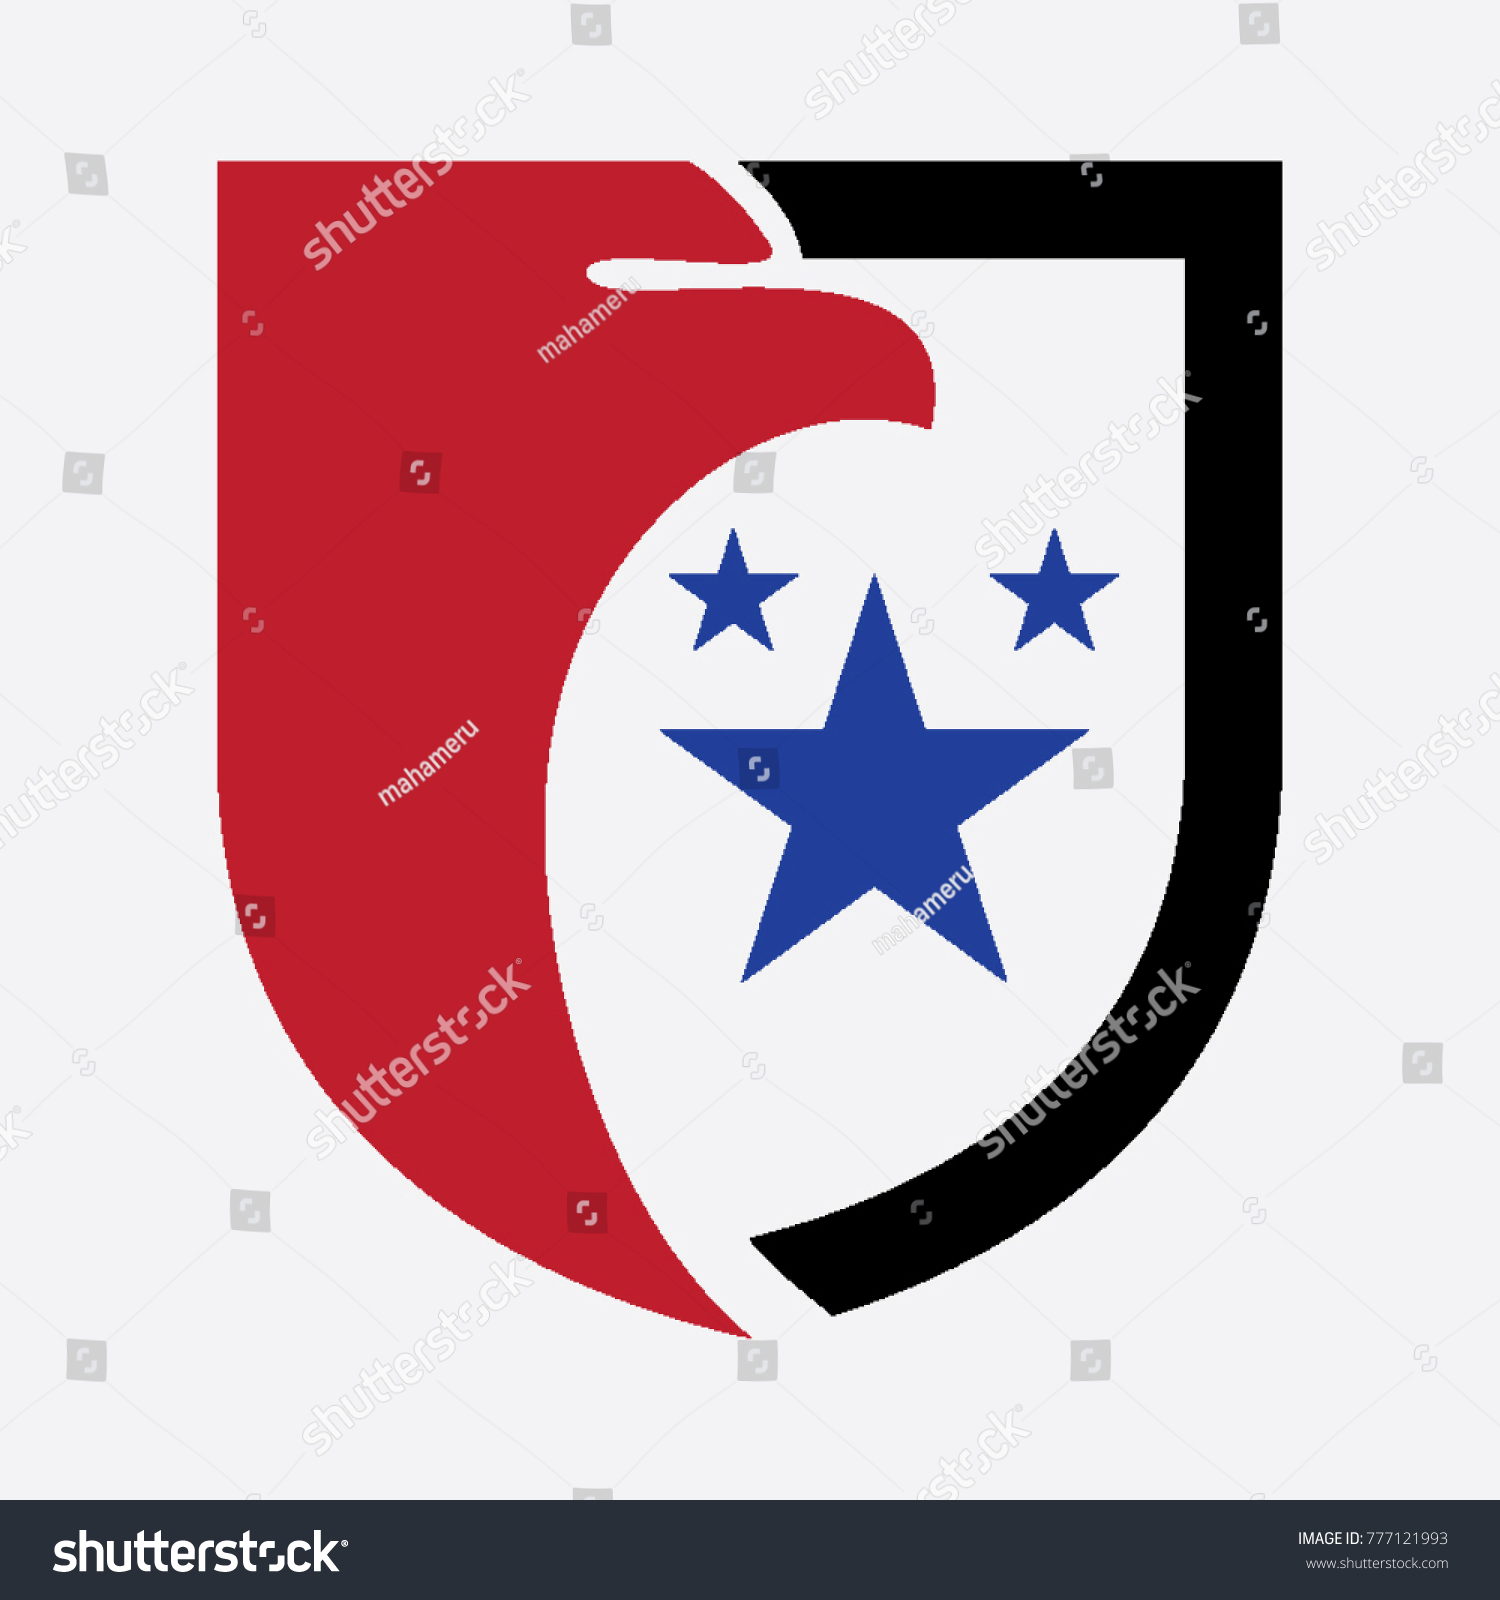 Shield eagle symbol logo stock vector 777121993 shutterstock shield eagle symbol logo biocorpaavc Gallery